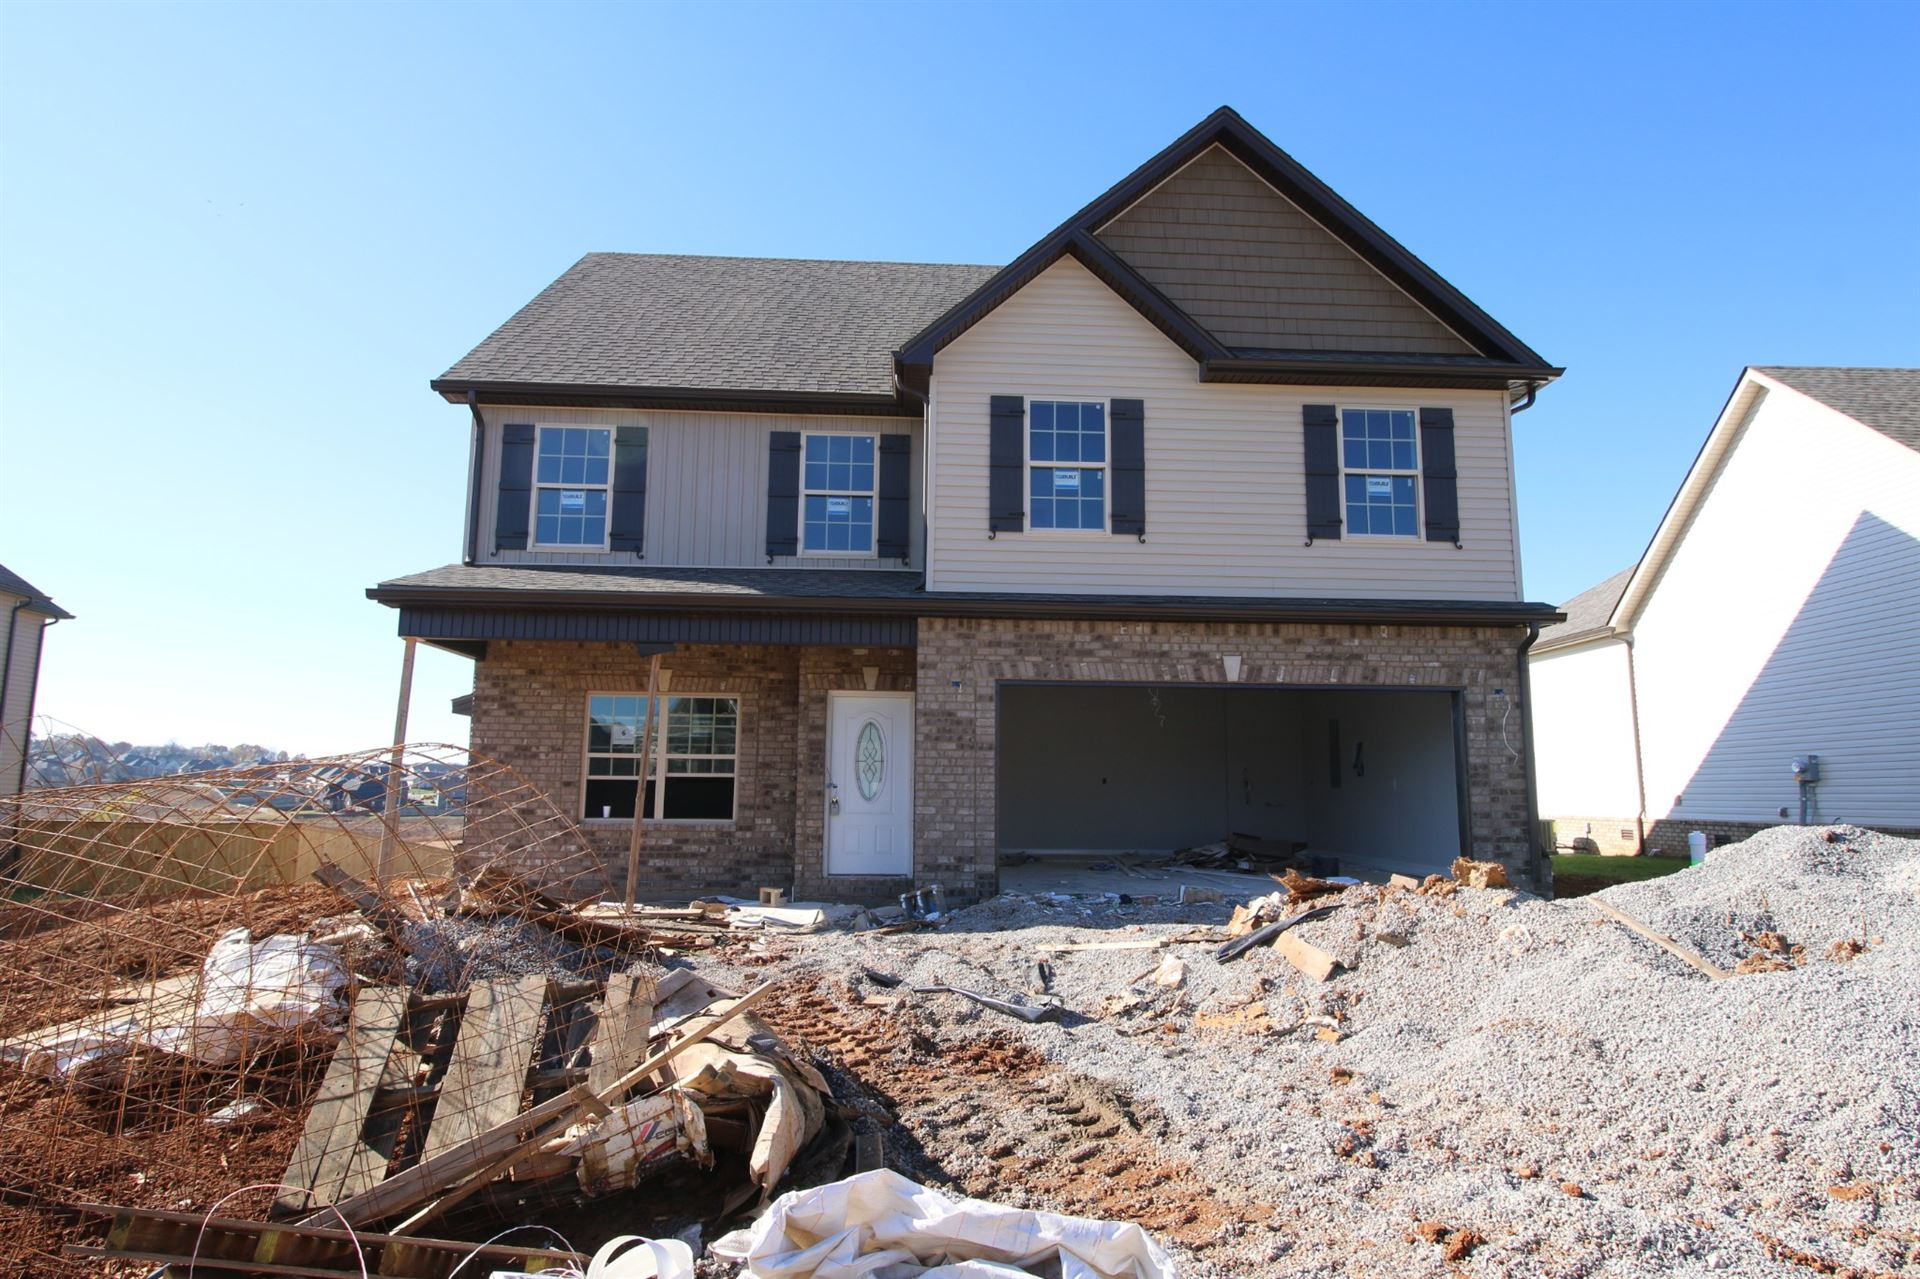 6 Reserve at Hickory Wild, Clarksville, TN 37043 - MLS#: 2184934